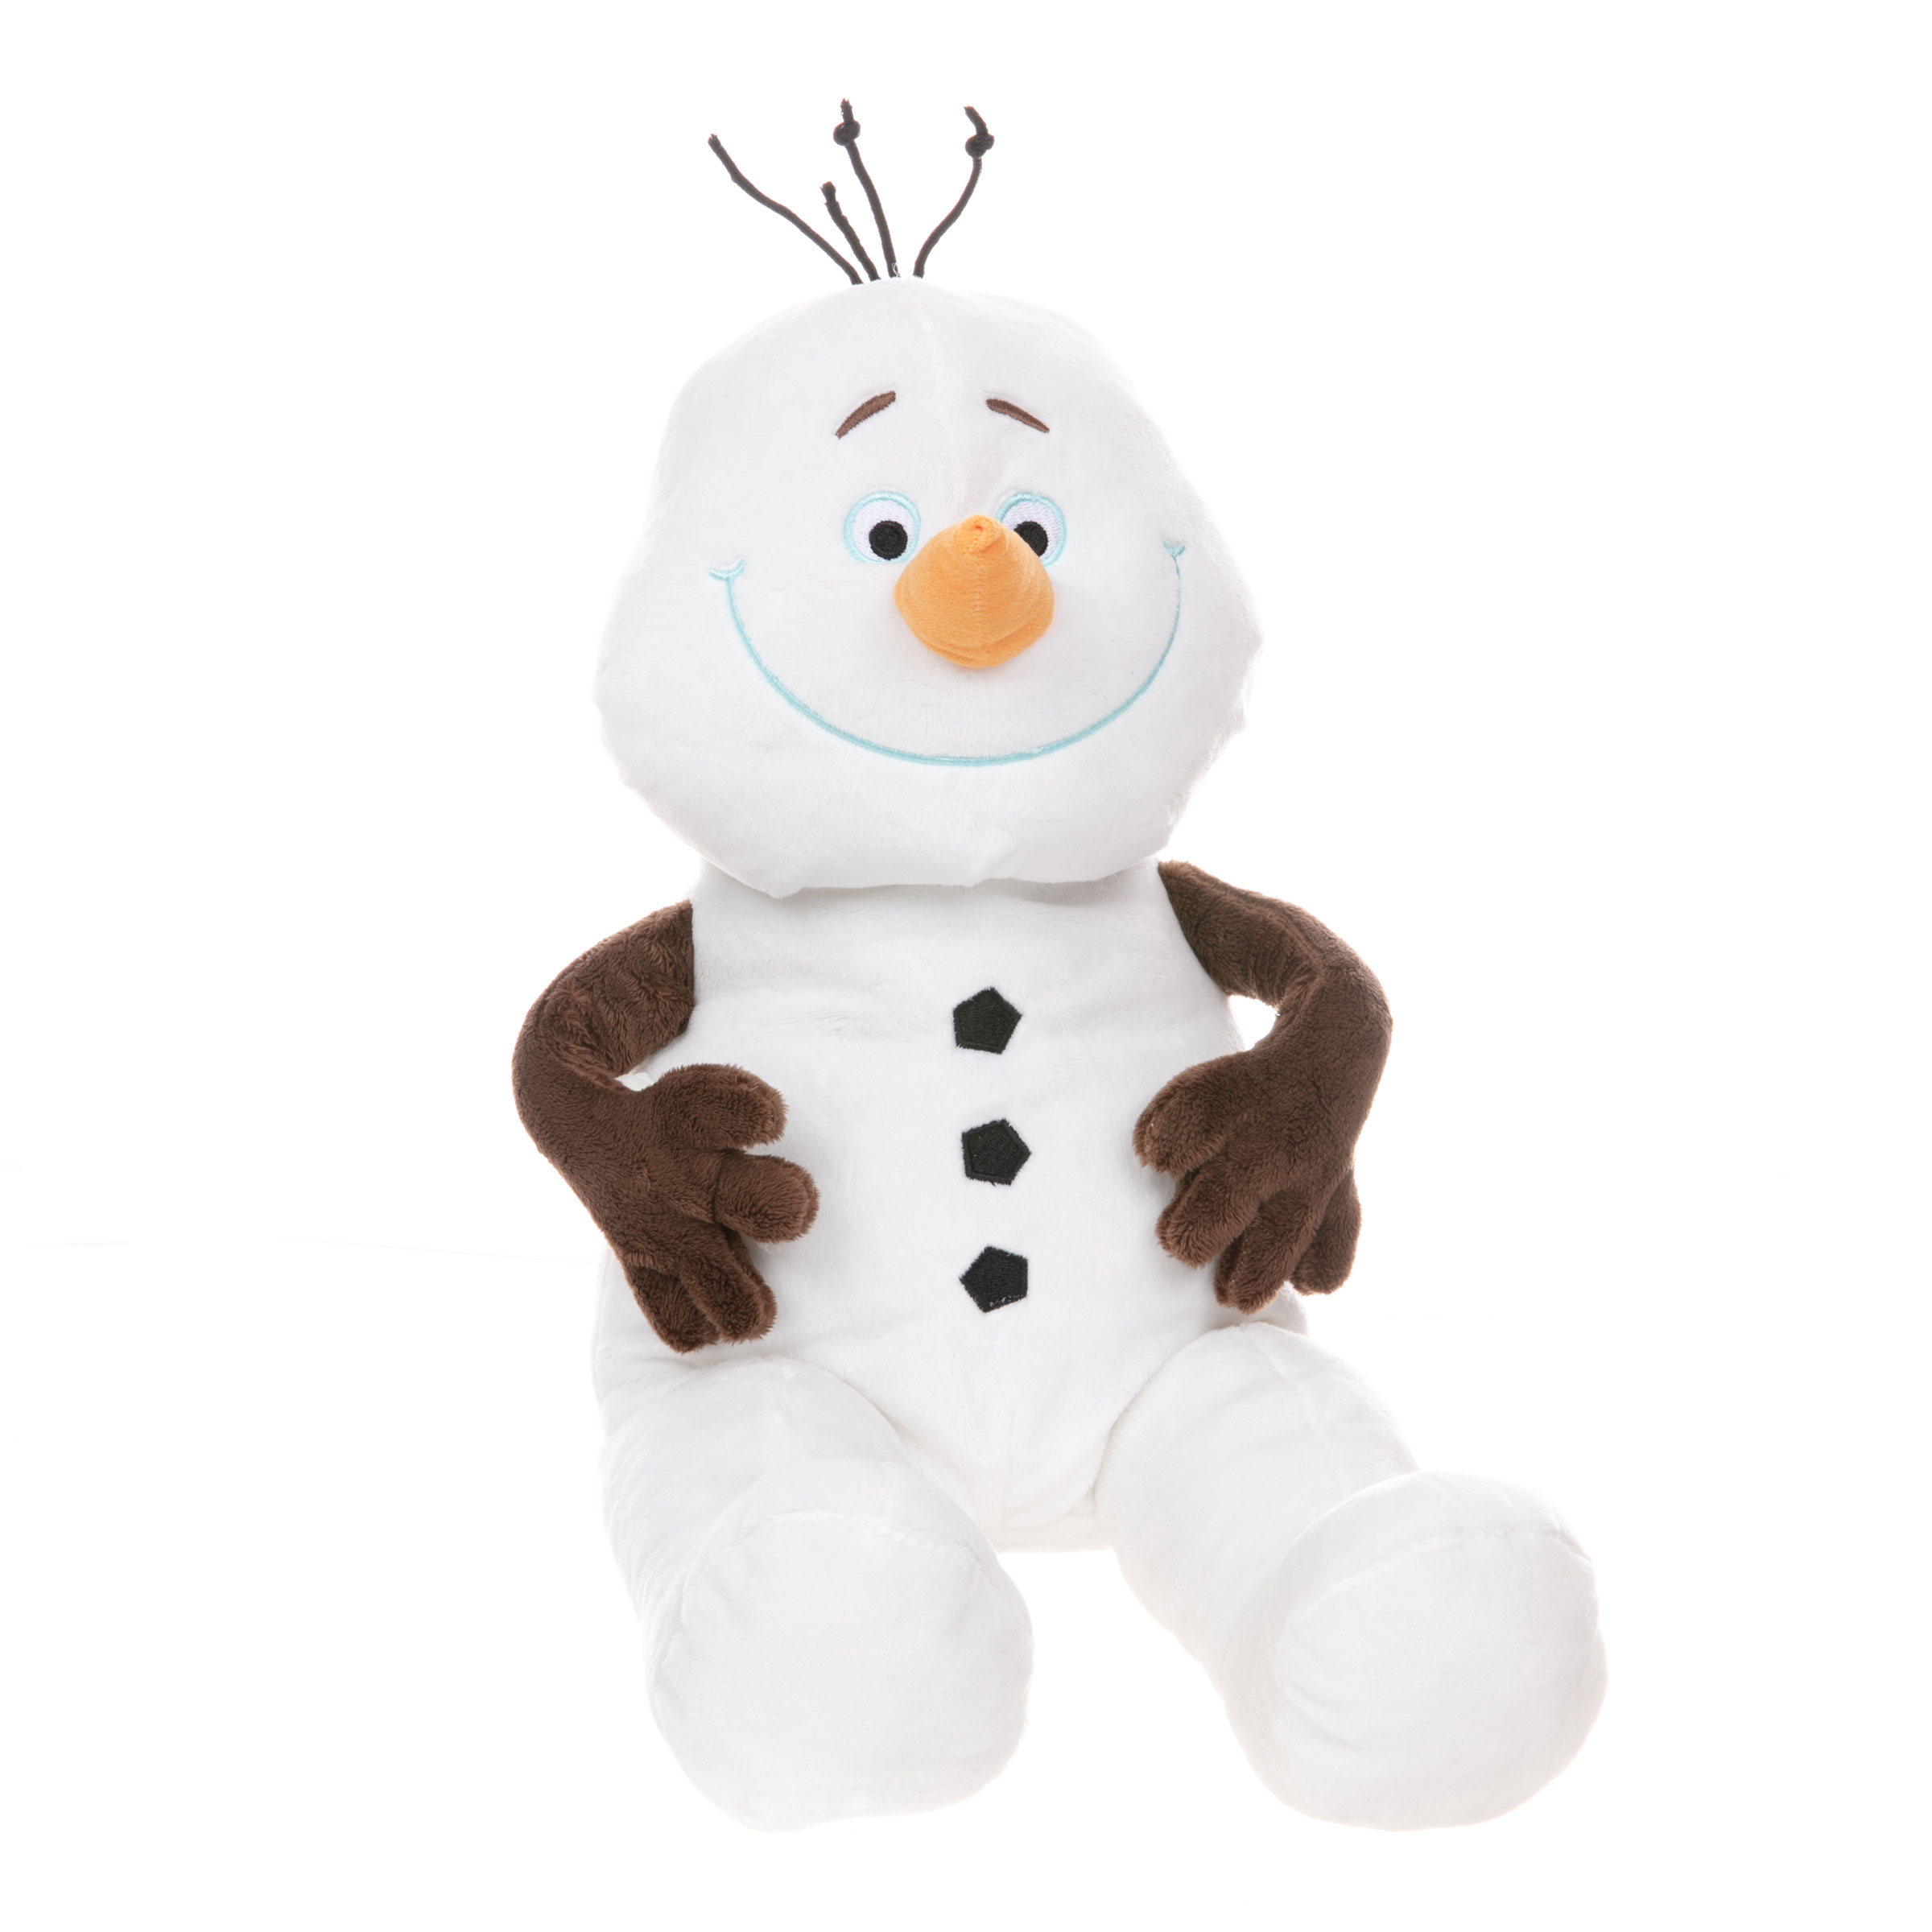 Snowy the Snowman Teddy Bear